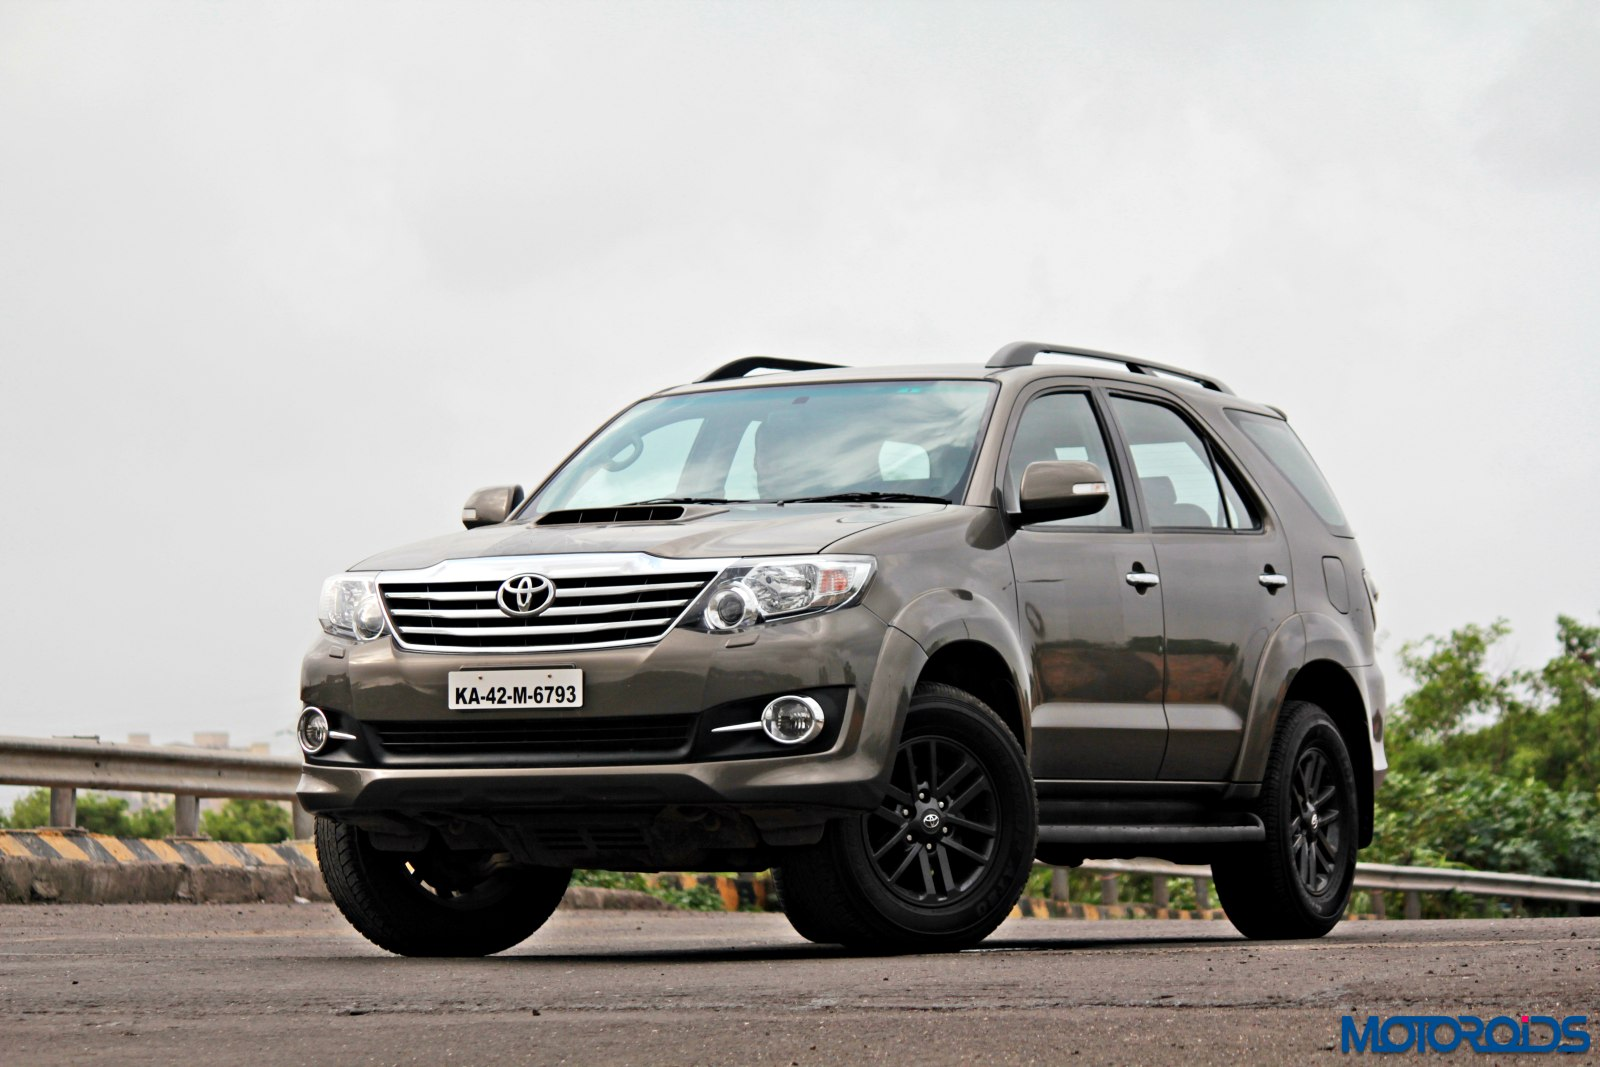 2015 toyota fortuner 3 0 4 4 at review ageless brawn motoroids. Black Bedroom Furniture Sets. Home Design Ideas